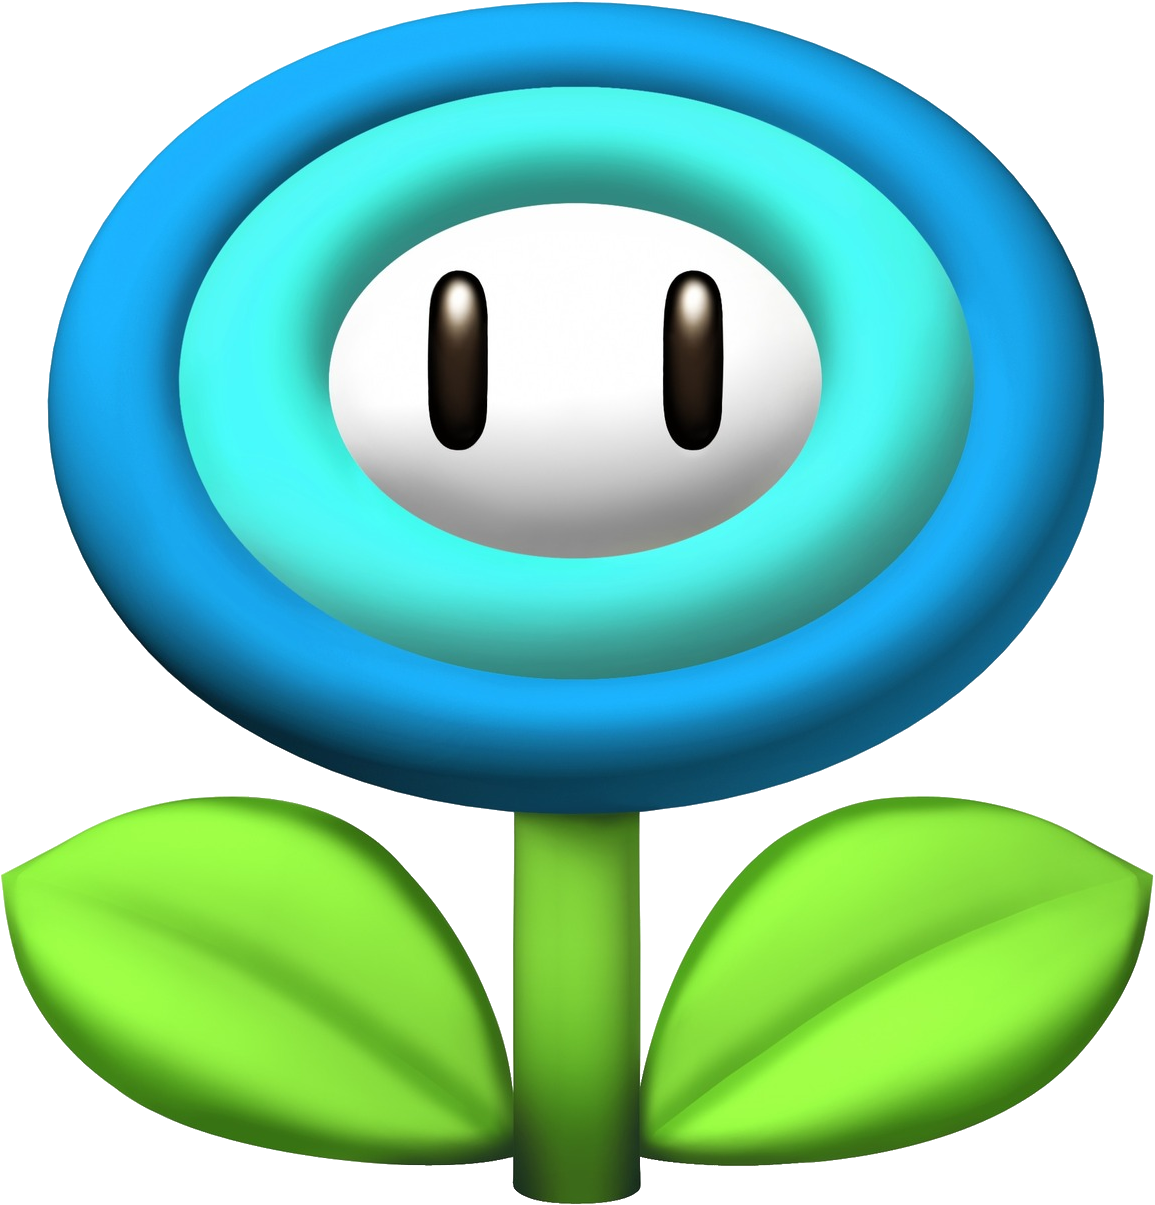 Super mario star eyes clipart graphic black and white stock Image - Ice Flower Artwork - New Super Mario Bros. Wii.png ... graphic black and white stock